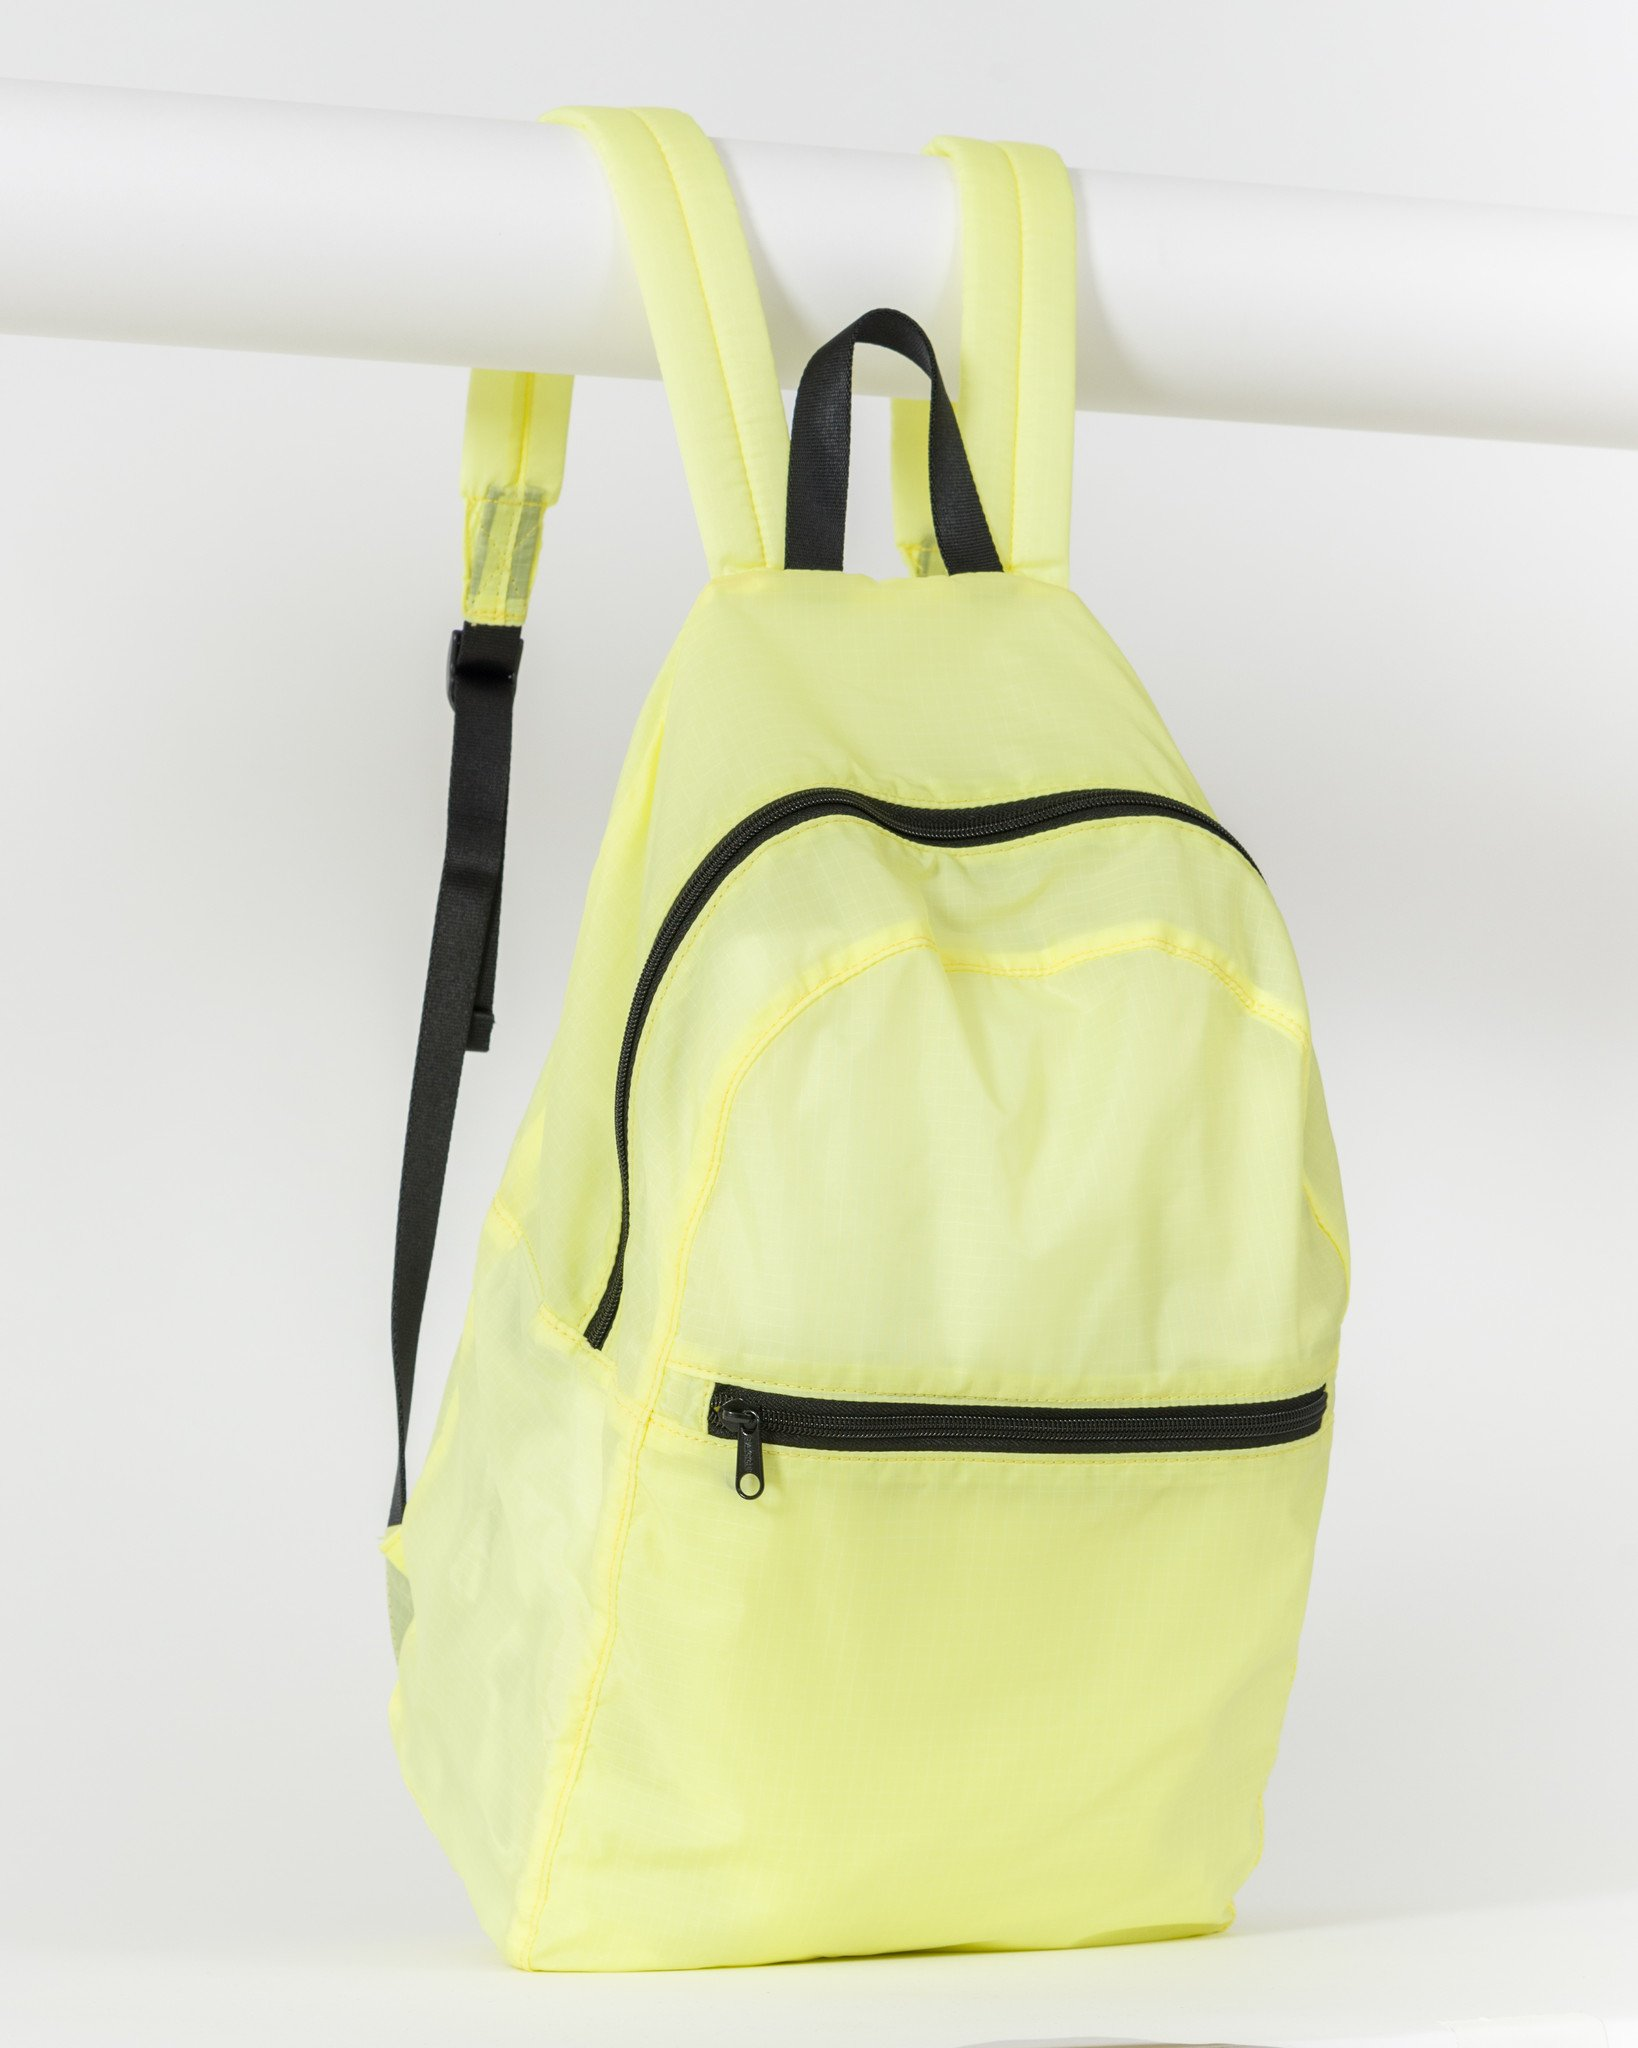 Image of a fluorescent yellow backpack that folds into a small pouch, an ideal bag for holding all the items in your zero waste travel kit